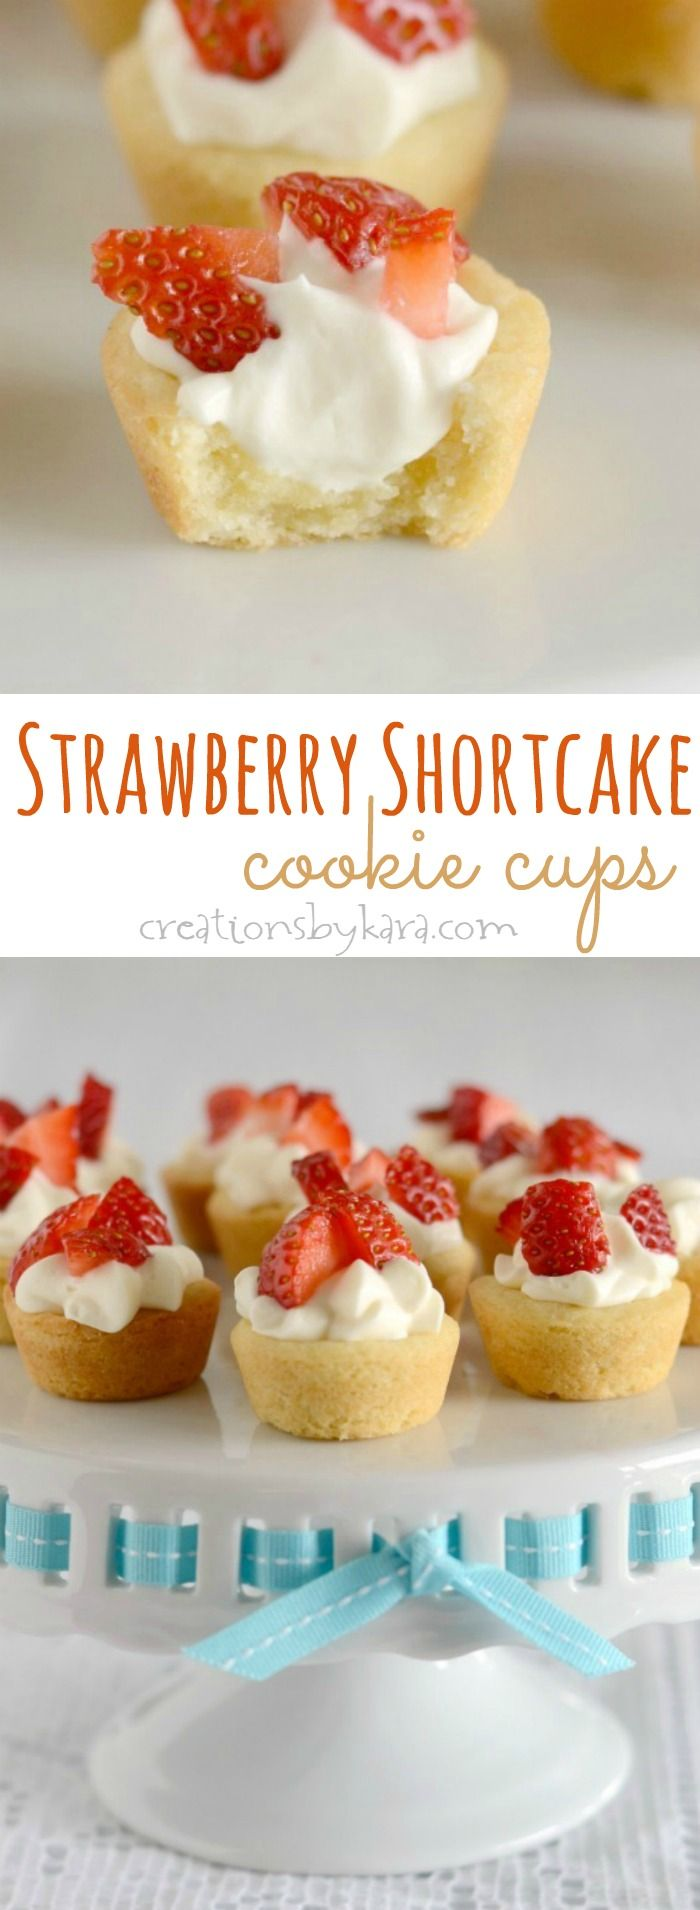 Mini Strawberry Shortcake Cups- a fun way to serve strawberry shortcake!